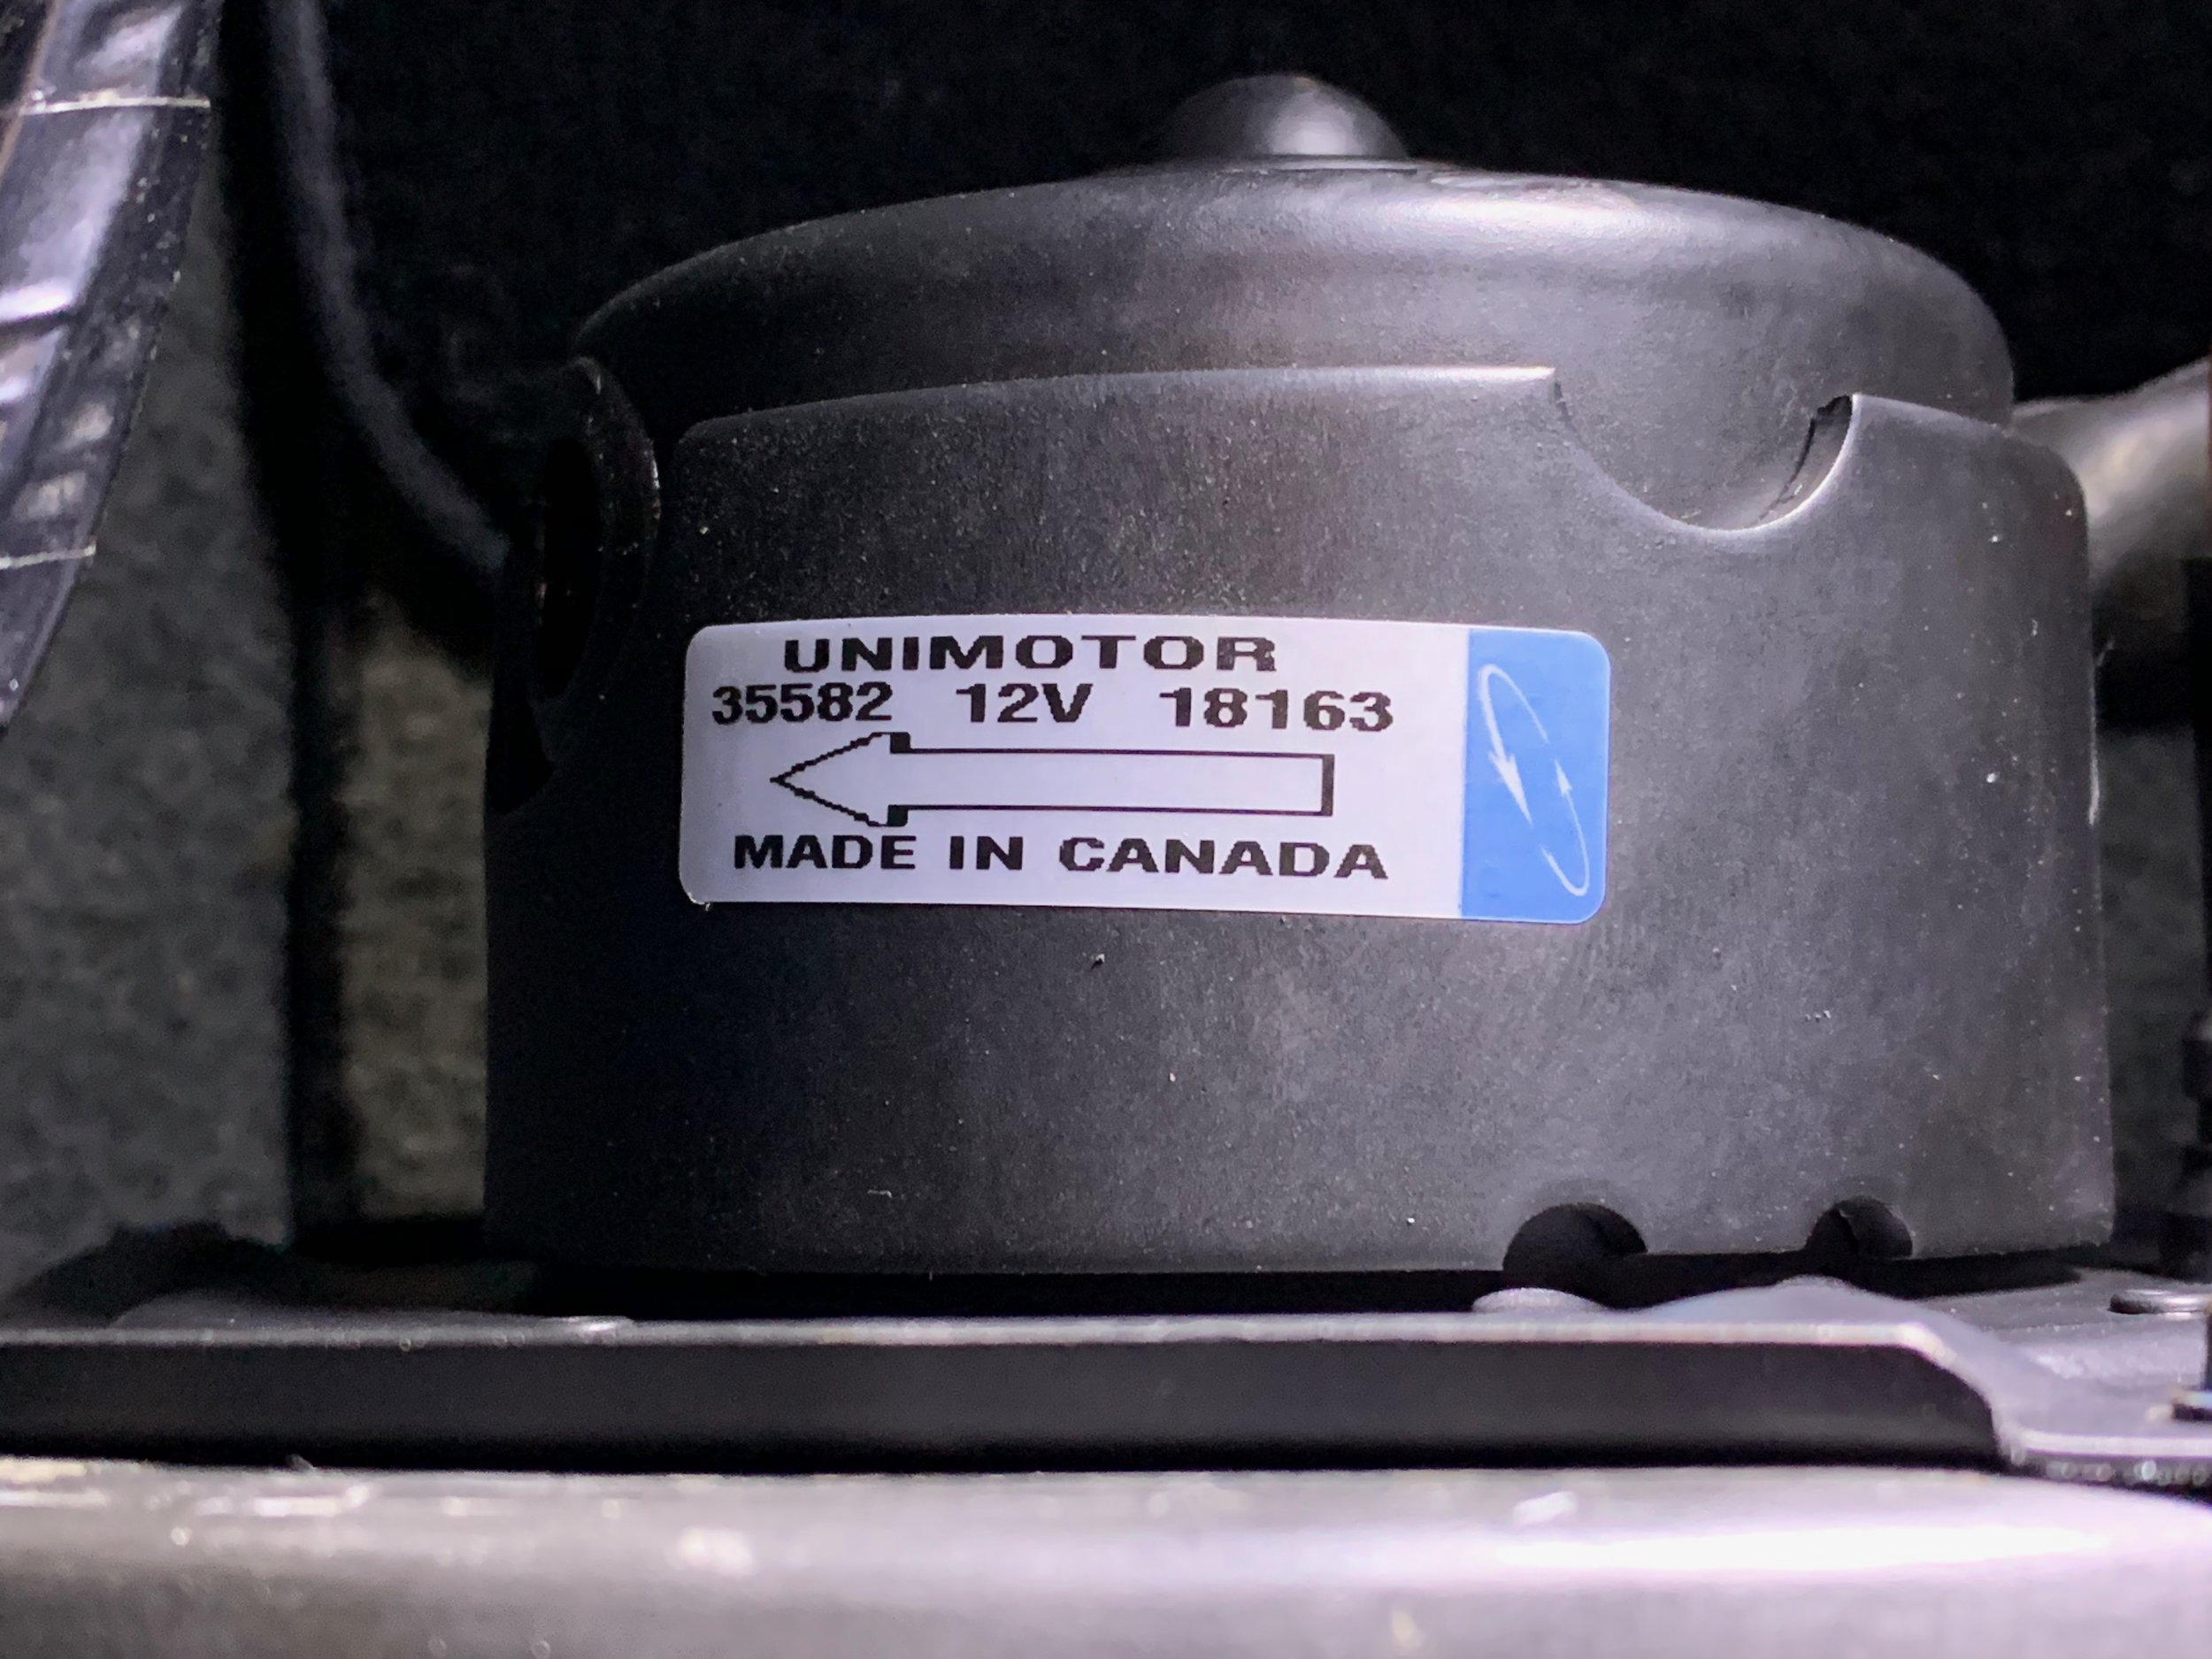 The label of the motor with its model number and an arrow indicating the direction of rotation..